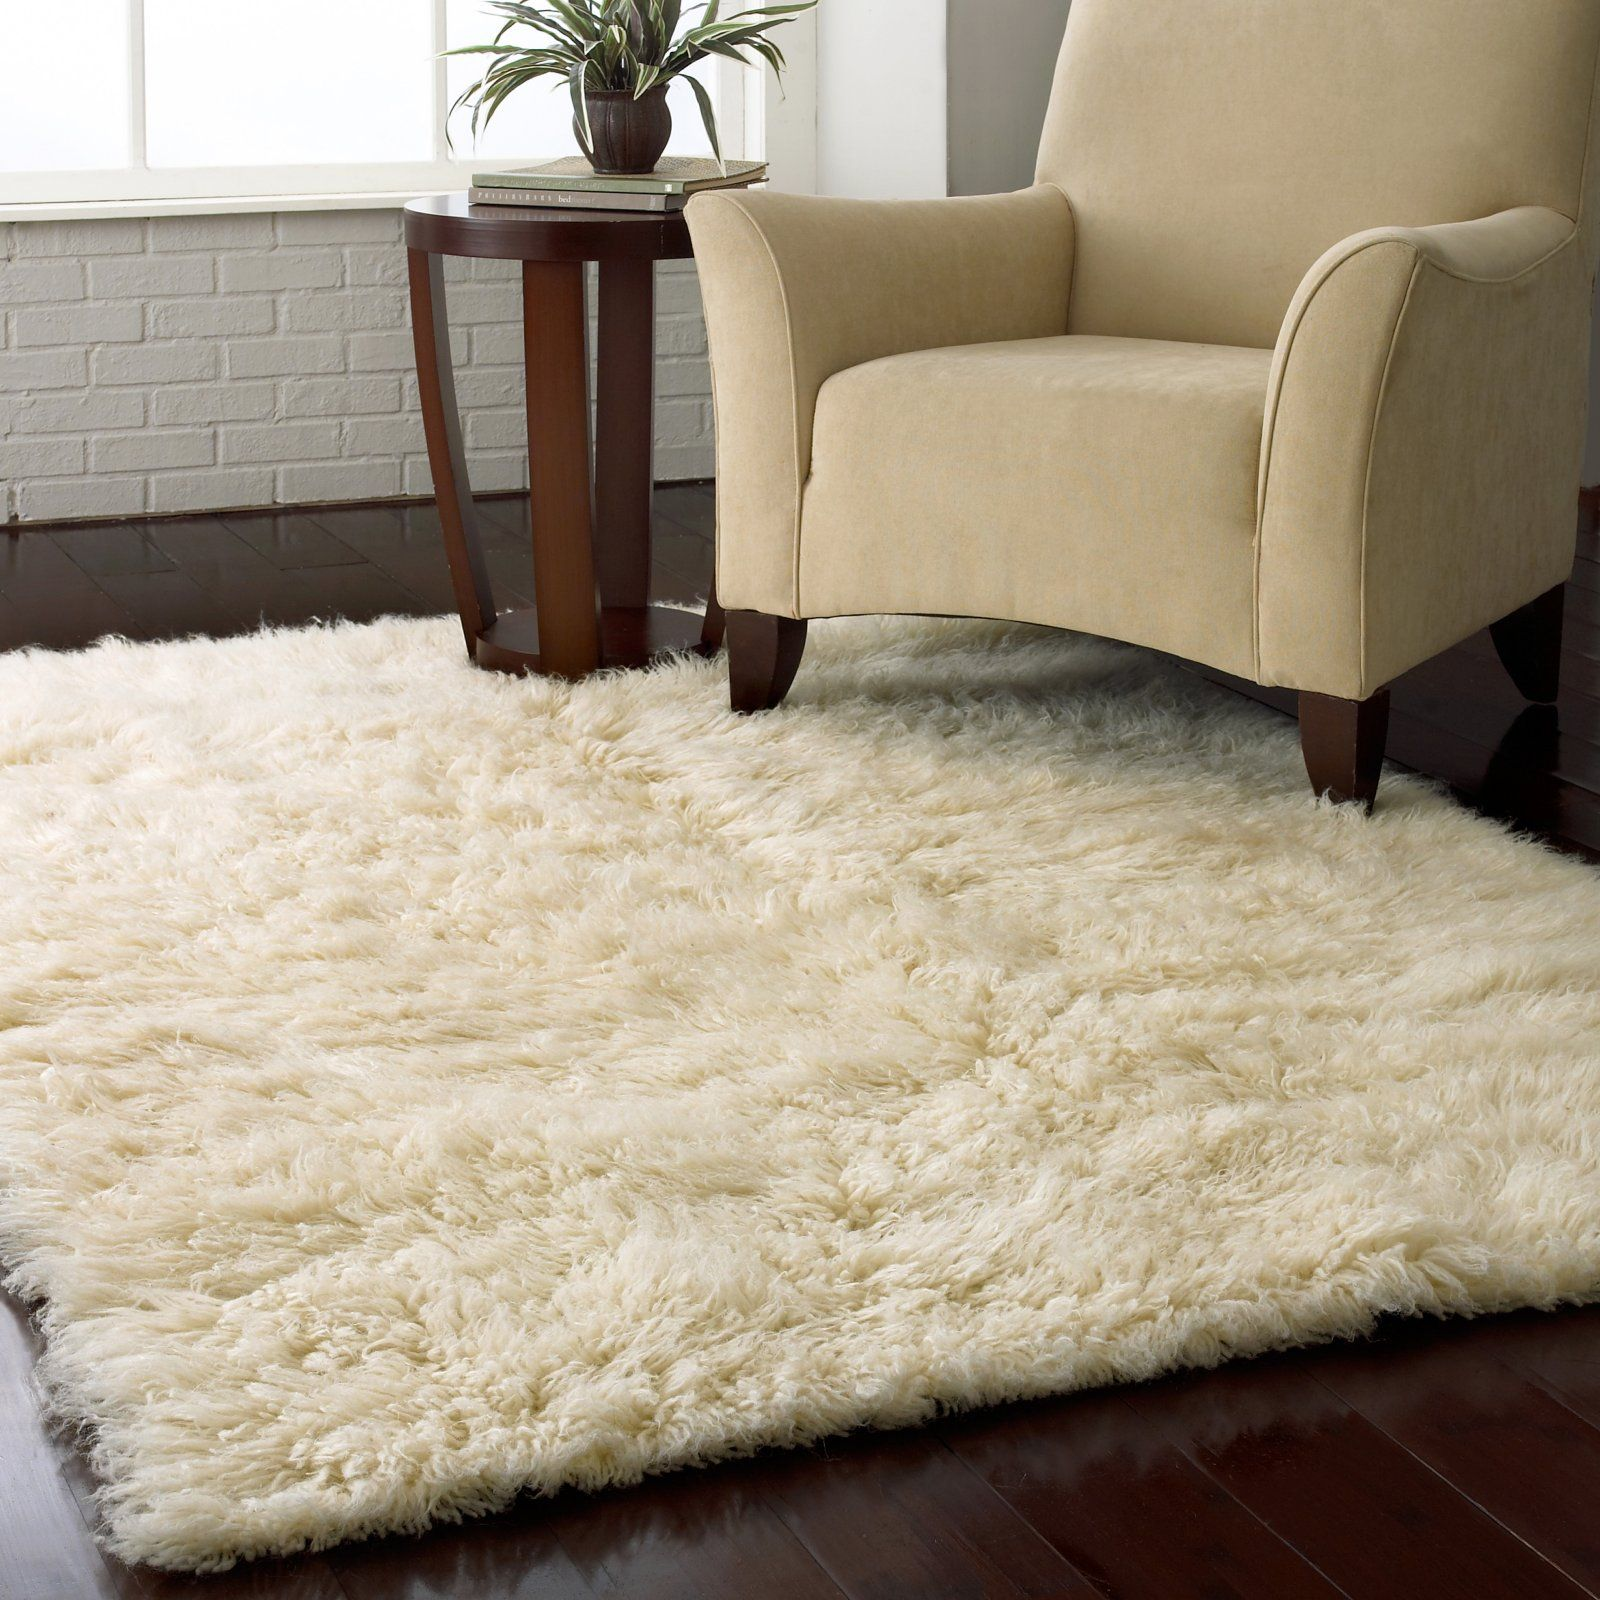 Shag Area Rugs For Living Room flokati shag rug - natural | front room brainstorming | pinterest